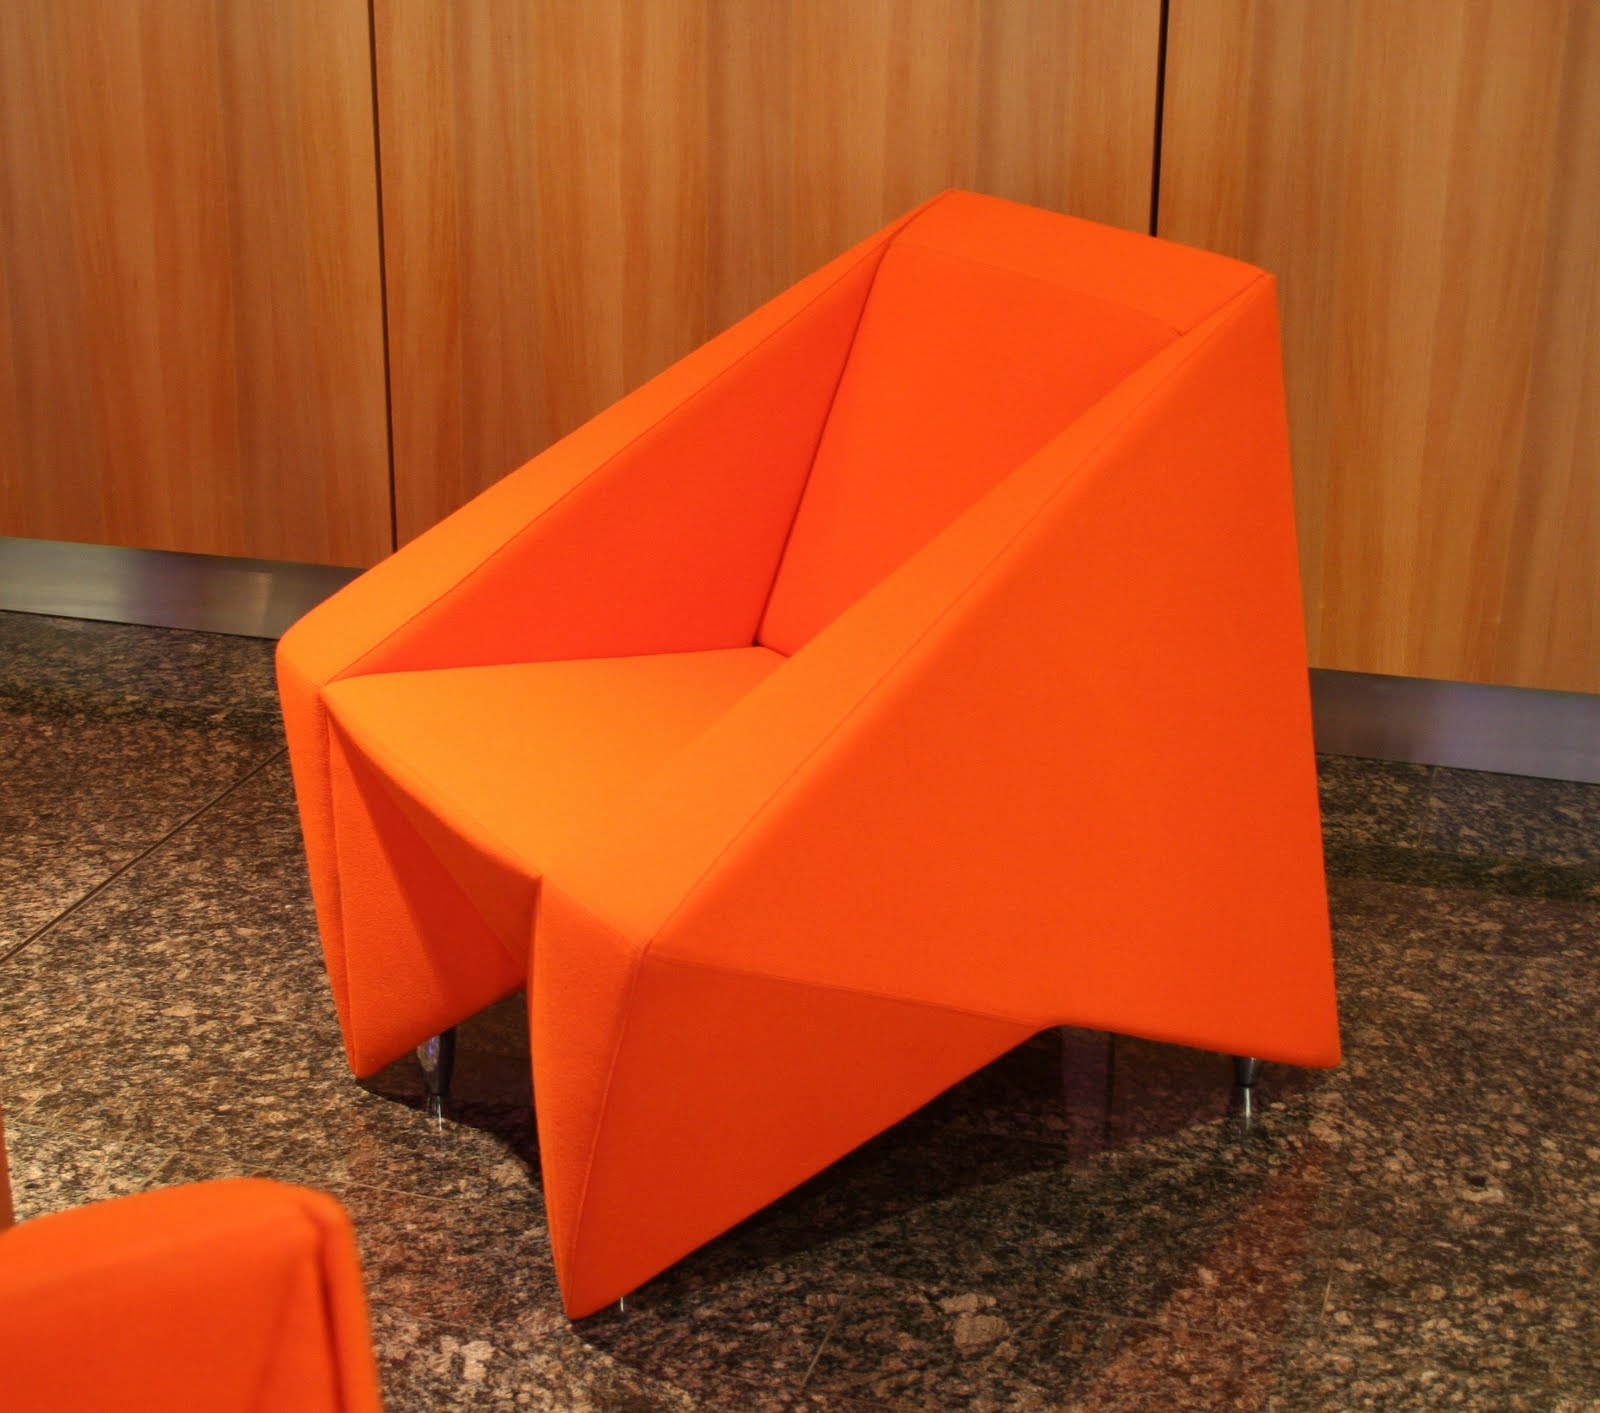 How to build frank lloyd wright origami chair plans pdf plans